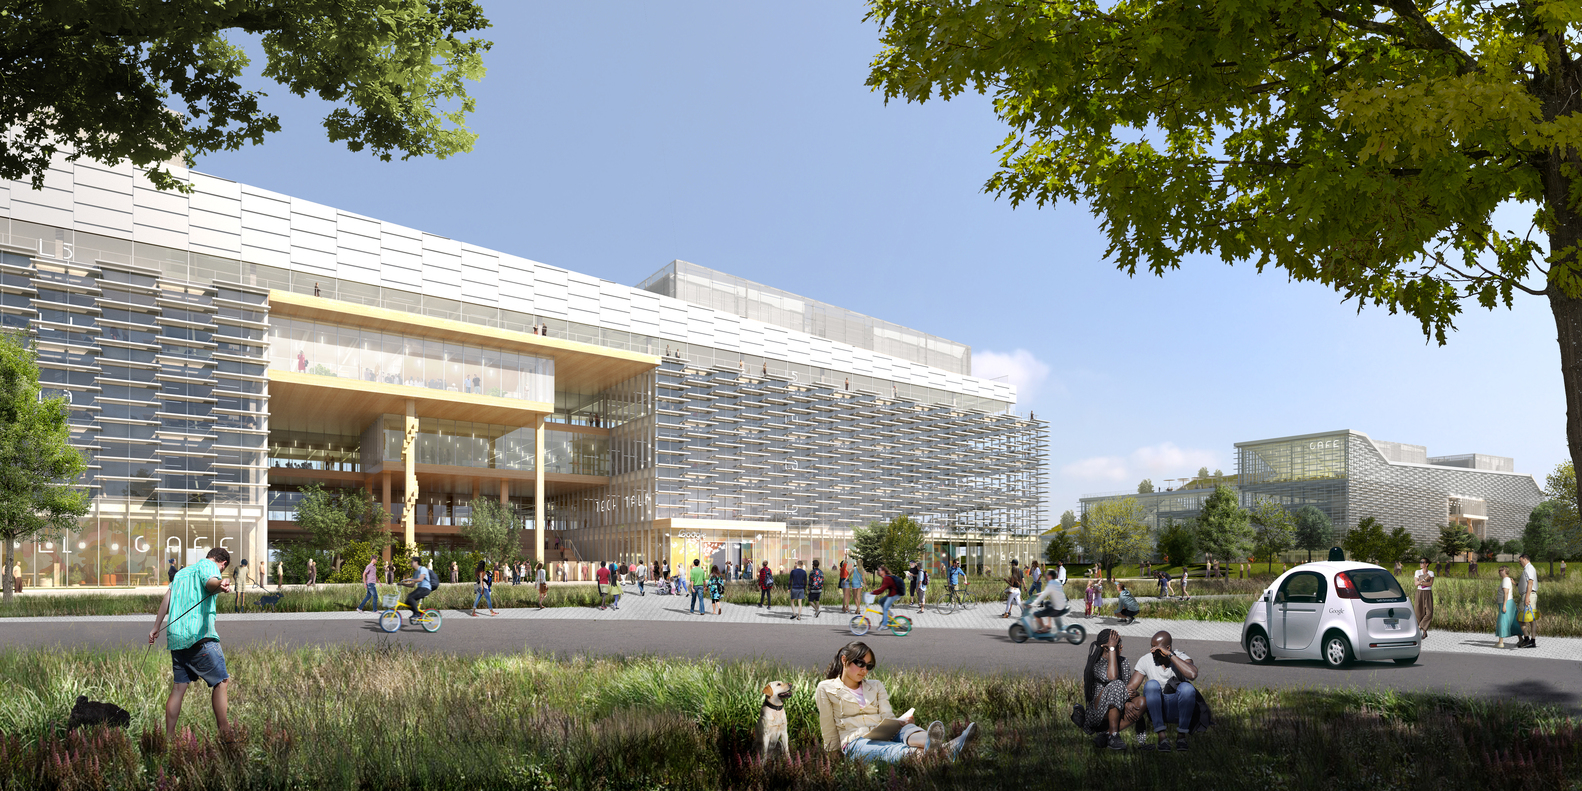 Google Reveals Plans for 1 Million Square Foot BIG-Designed Campus in Sunnyvale, California,Ground South View. Image Courtesy of Google